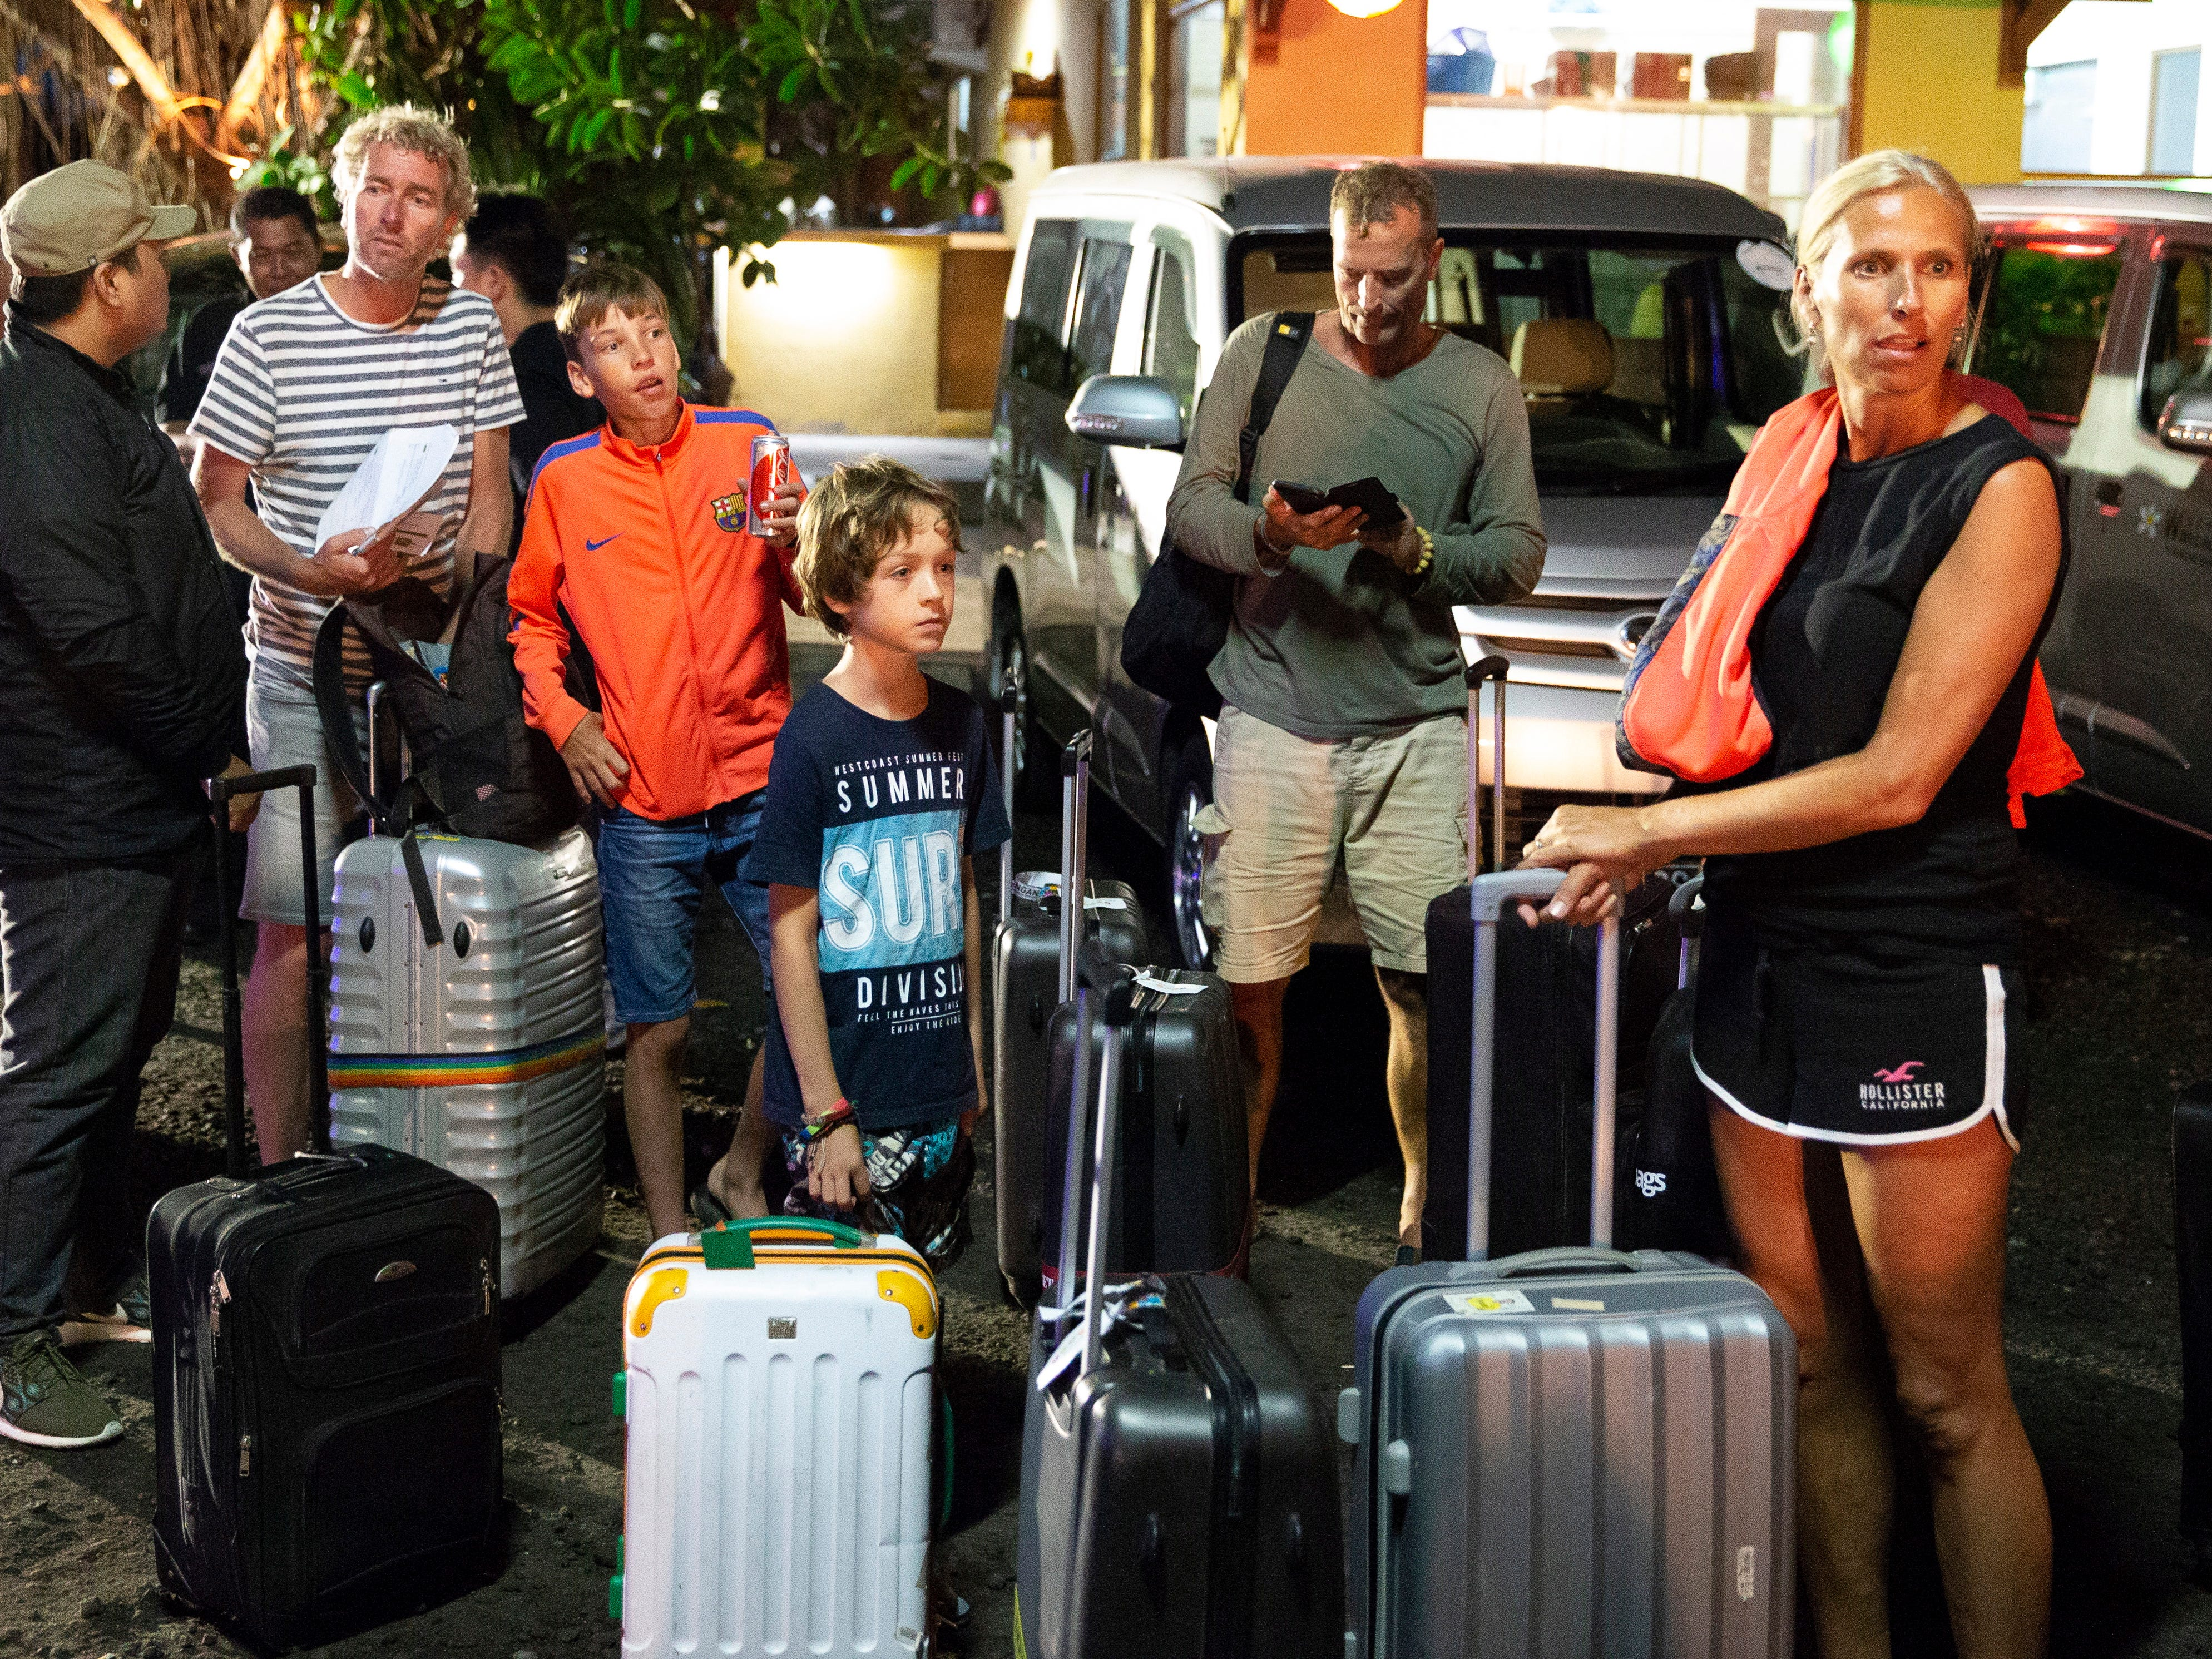 Foreign and domestic tourists evacuated from Gili island in Lombok following the earthquake, arrive at Benoa port in Bali, Indonesia onAug. 7, 2018. According to media reports, a 7.0 magnitude quake hit Indonesia's island of Lombok on Aug. 5., killing at least 91 people. Several aftershocks have been detected and hundreds of foreign tourists are on an exodus from the Indonesian island.